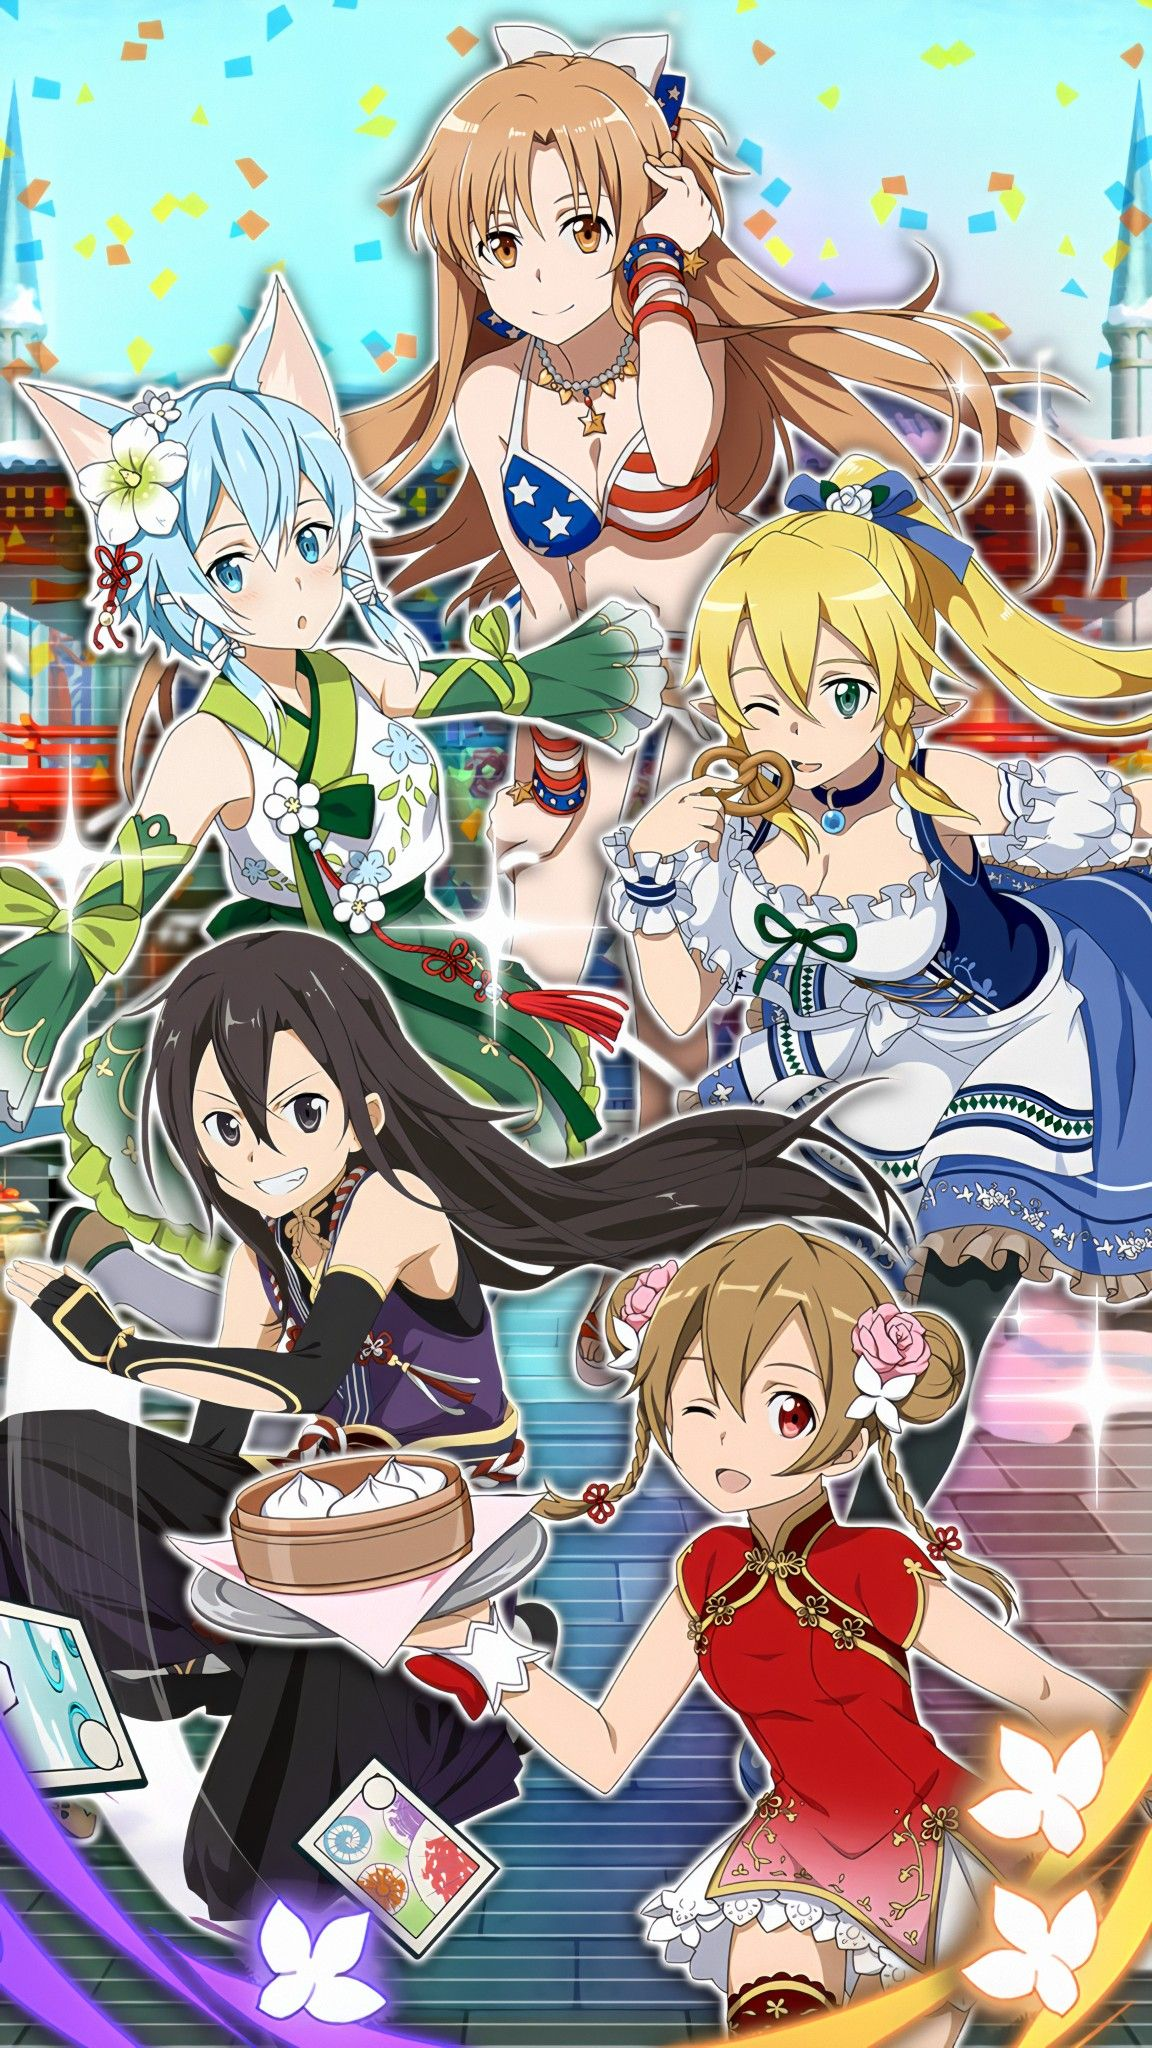 Pin by emmie ho on Nghệ thuật anime in 2020 Sword art